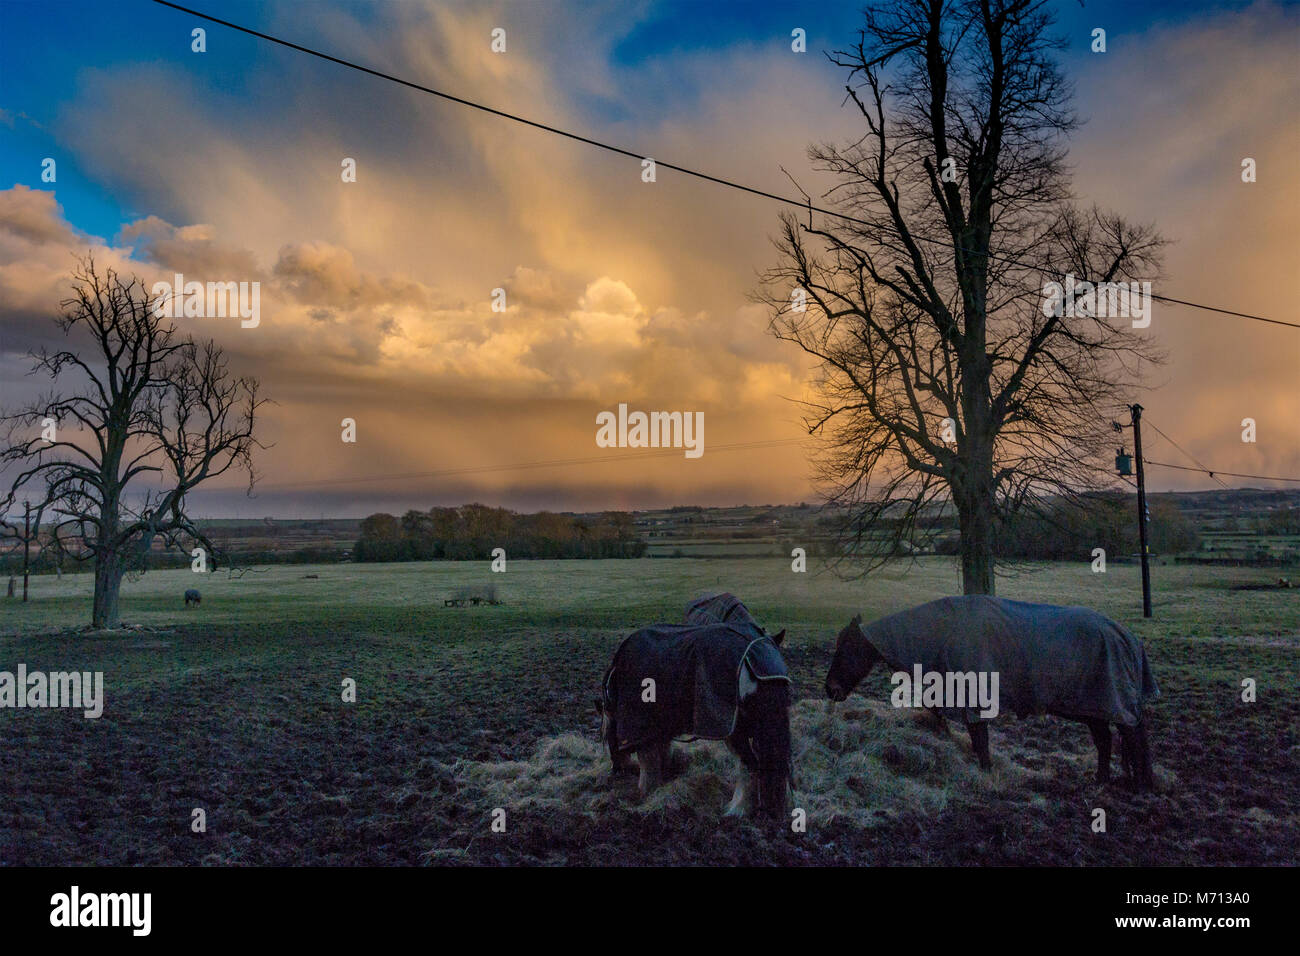 Melton Mowbray 7th March 2018: Drama in the evening sky during a  mild evening with natures deep blues and orange - Stock Image